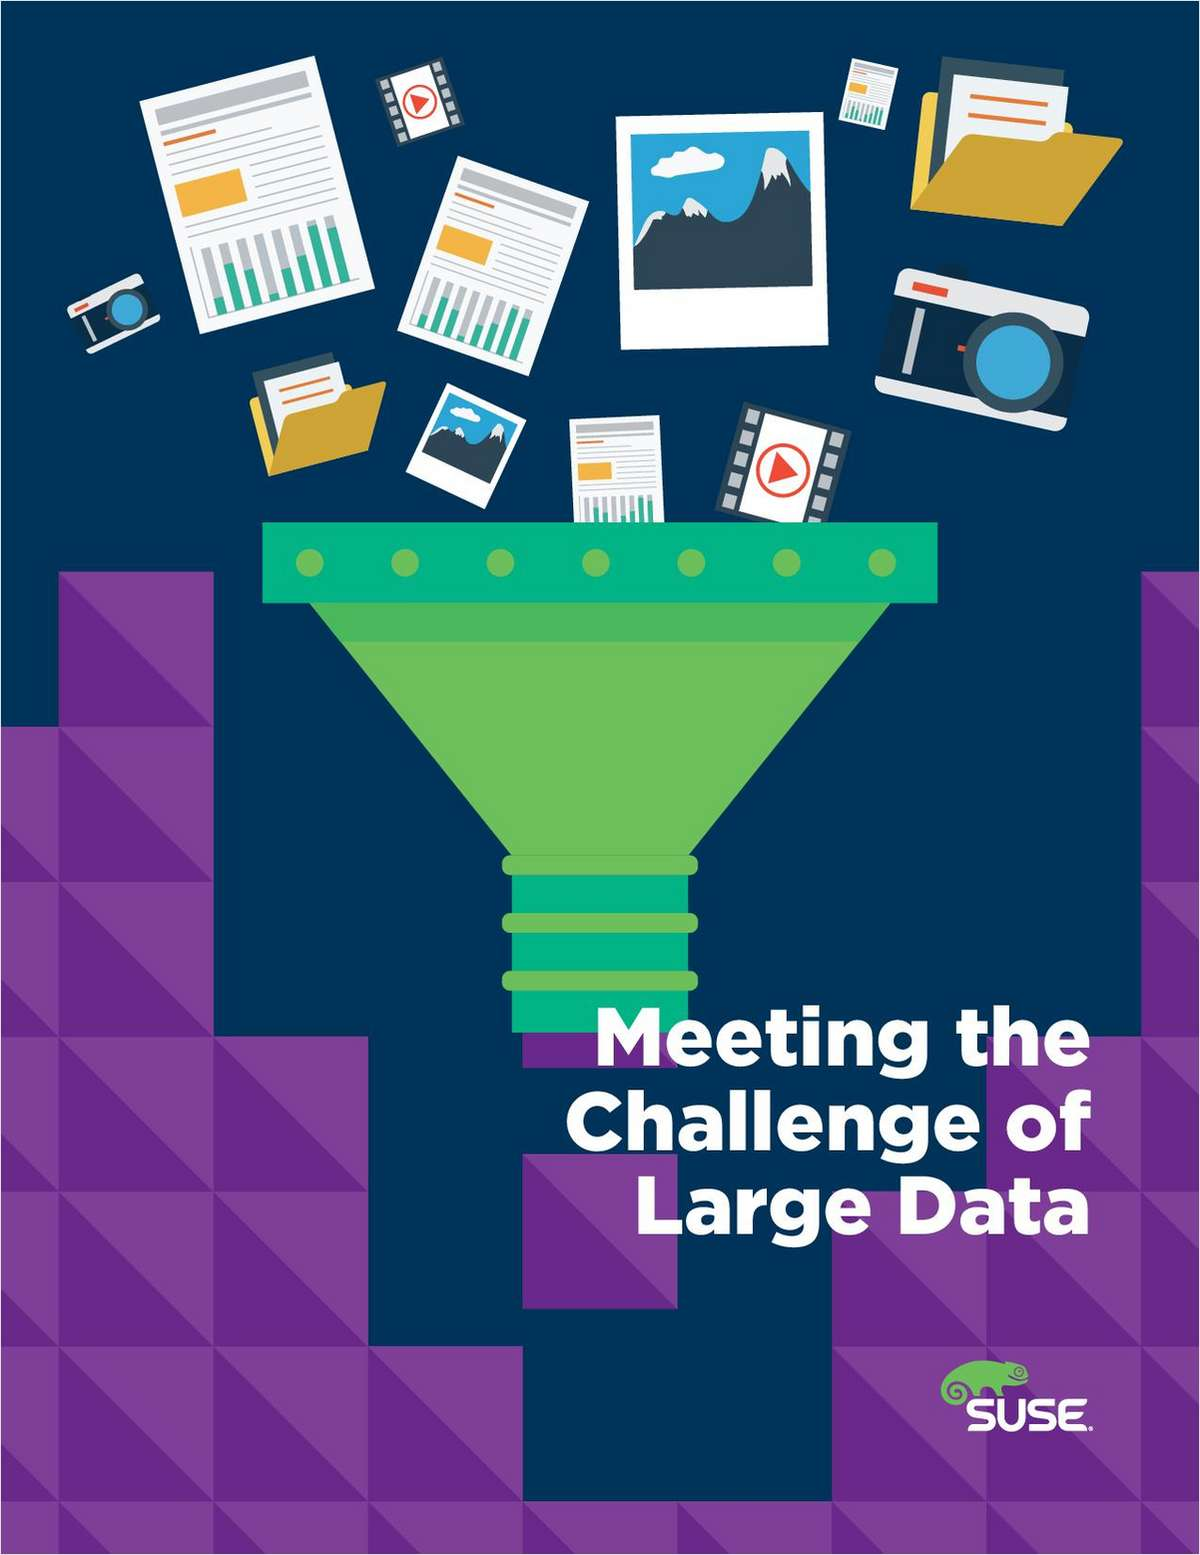 Meeting the Challenge of Large Data